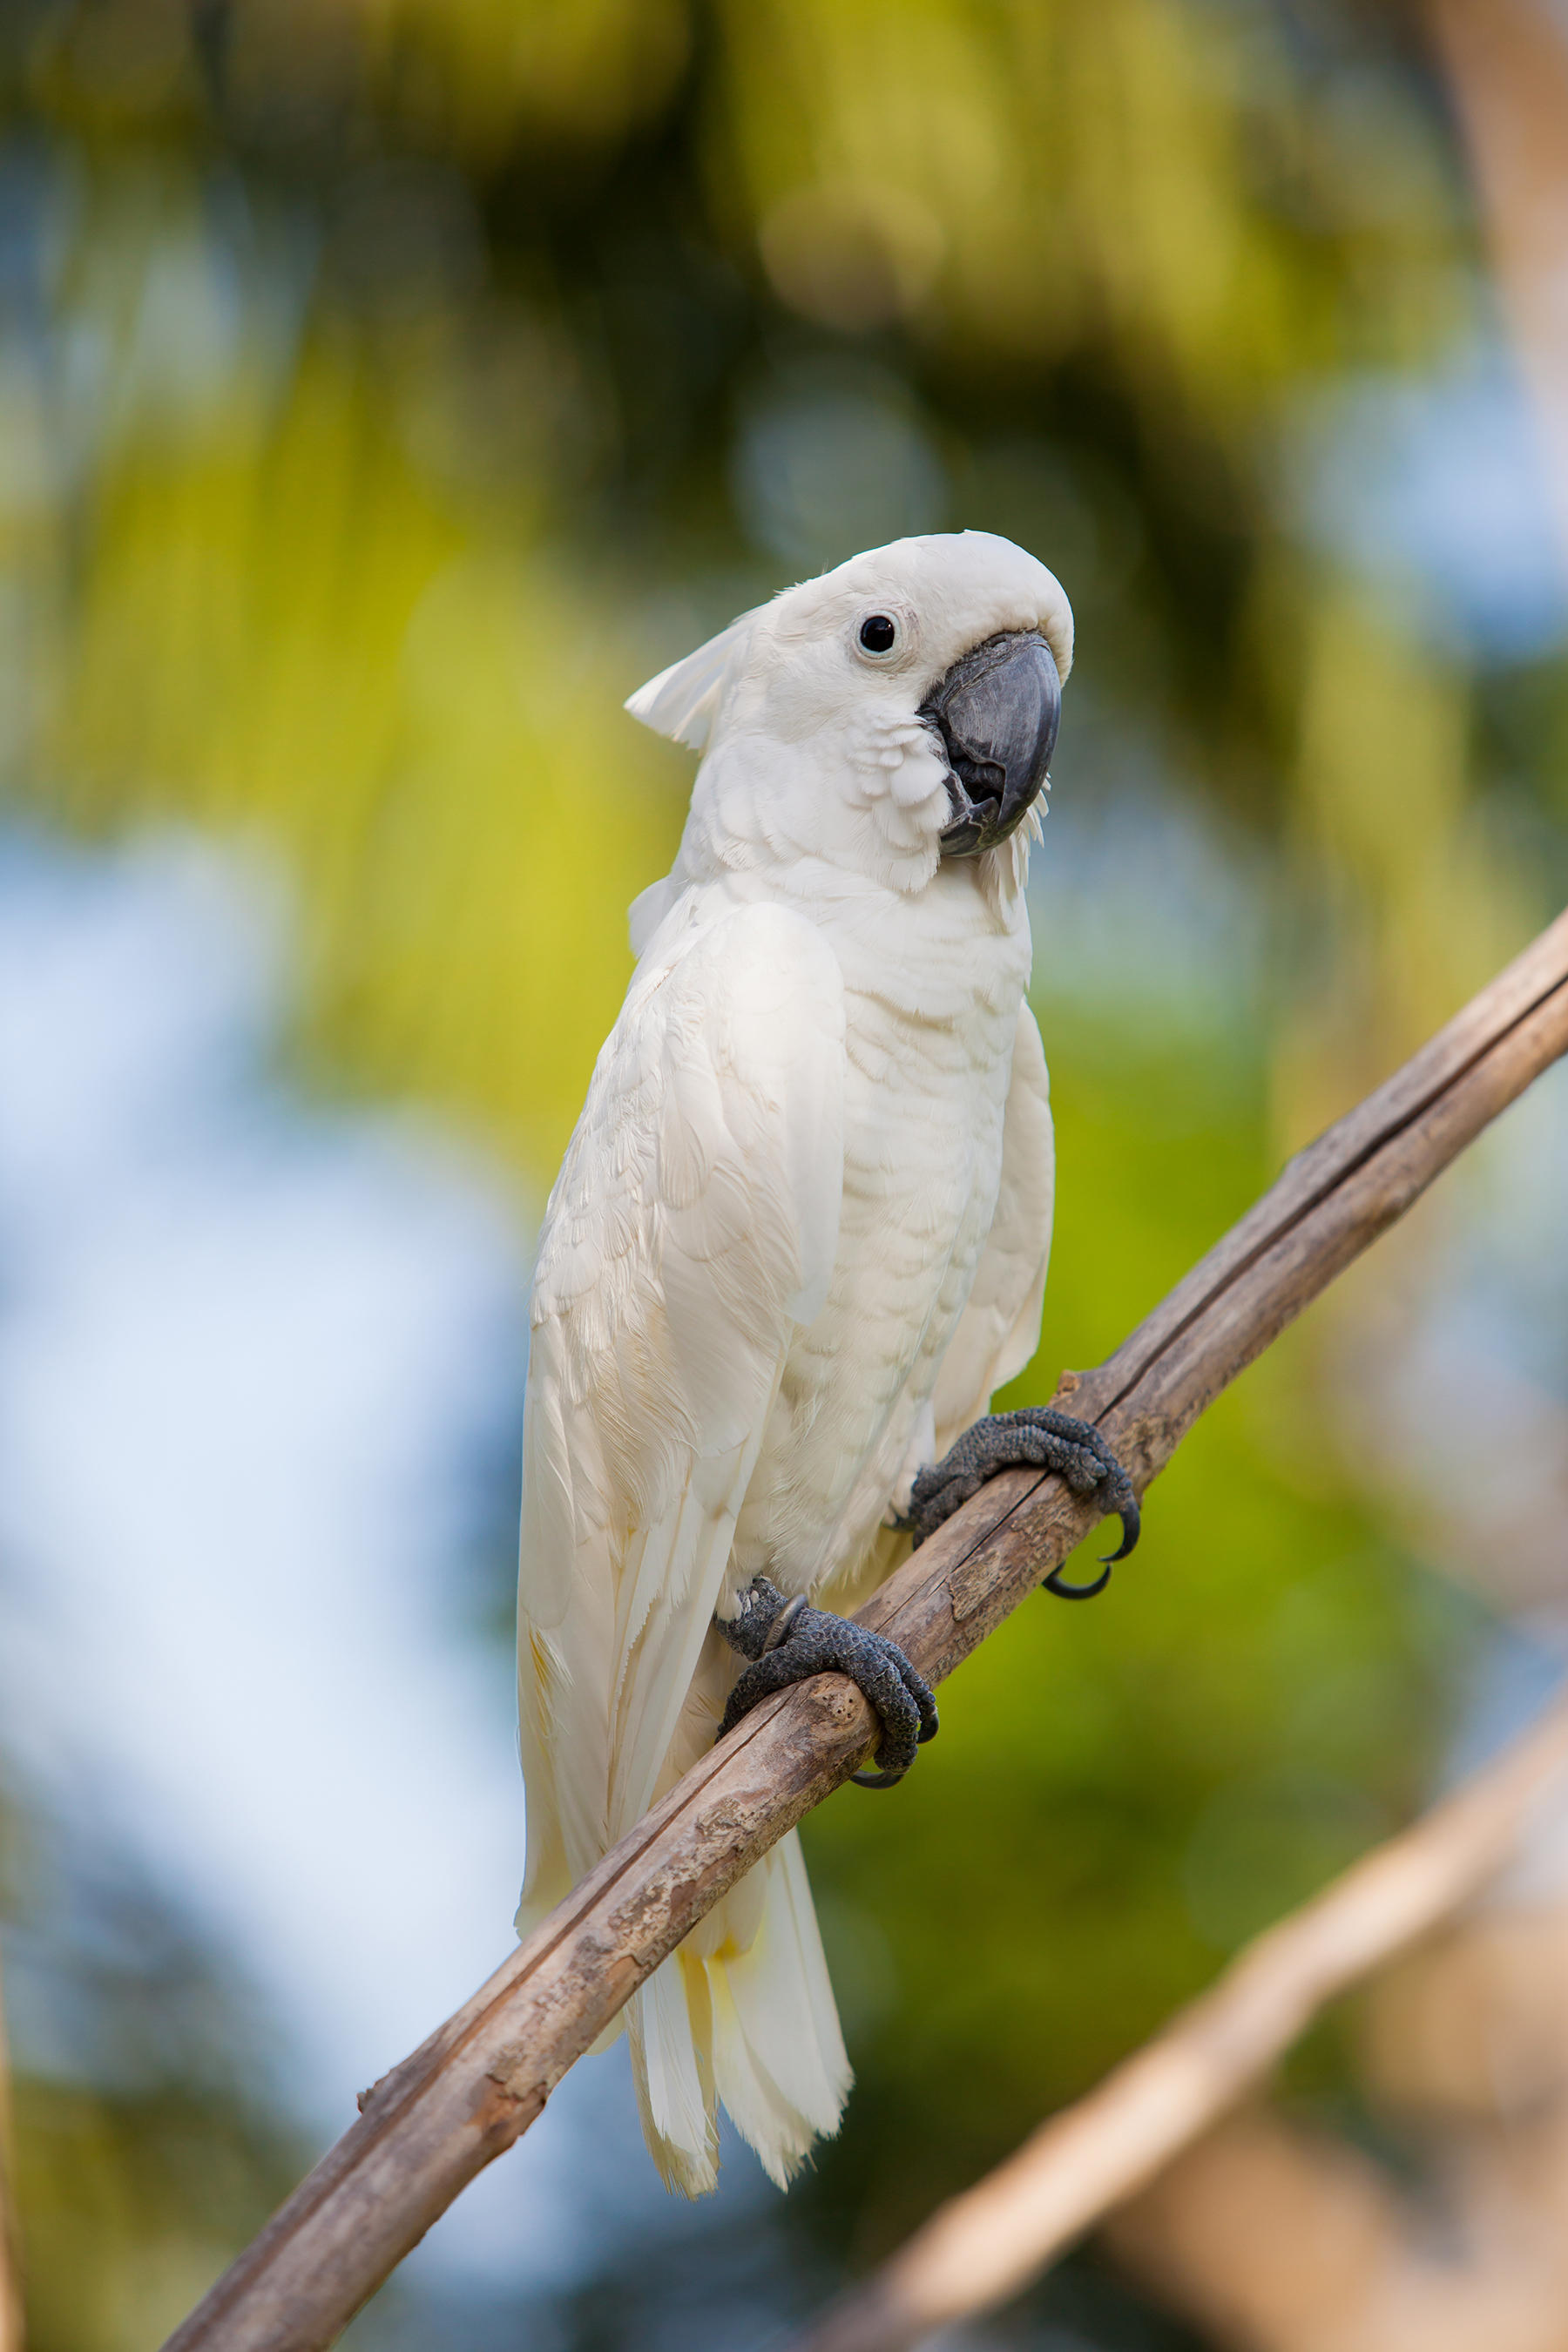 Branches of white parrots 52979 - Birds photo - Animal